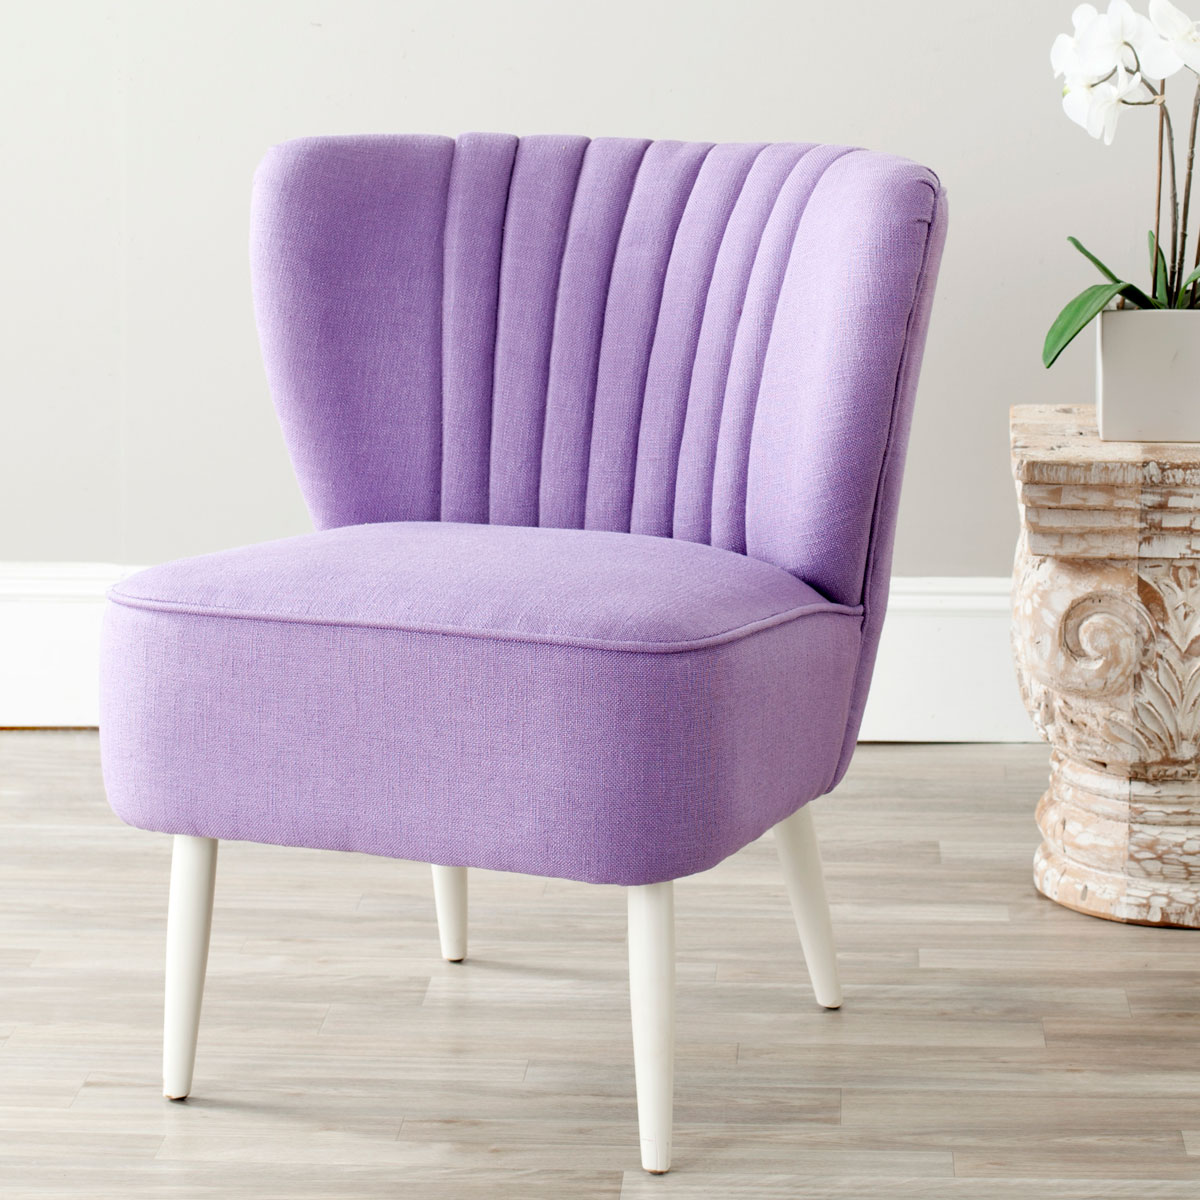 Lavender Chair Mcr4548c Accent Chairs Furniture By Safavieh